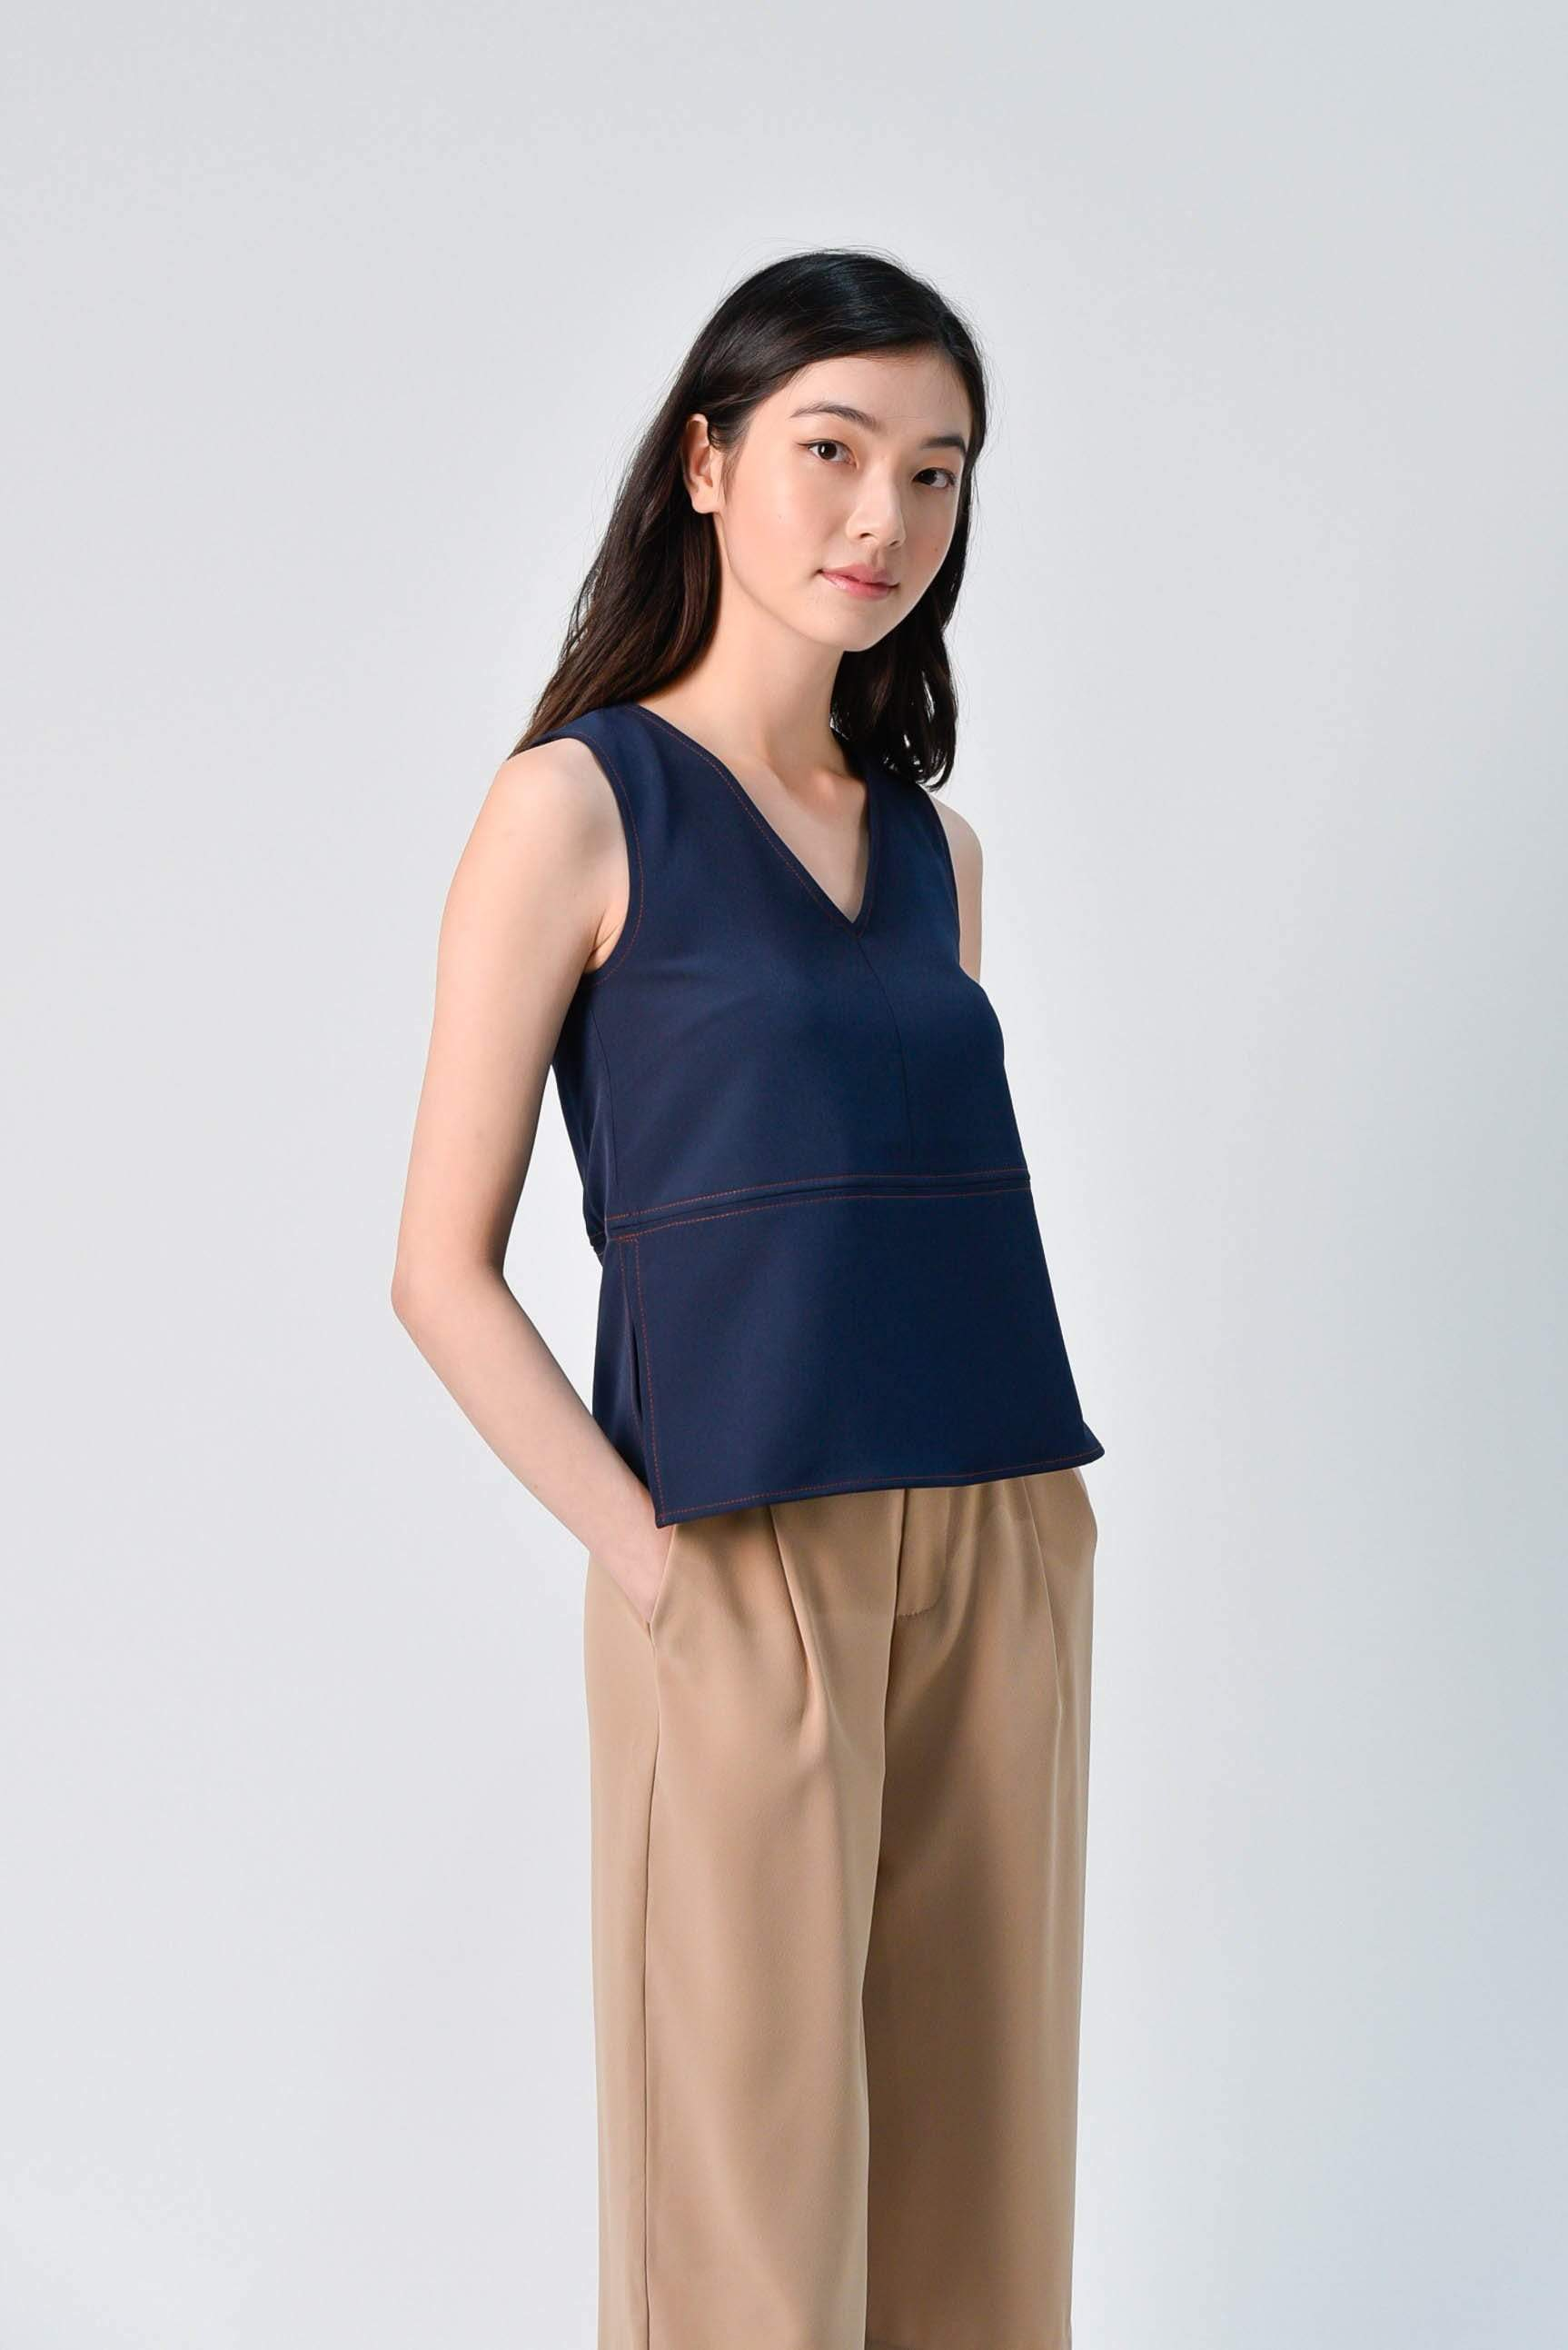 STITCHED SIDE-SLIT TOP IN NAVY